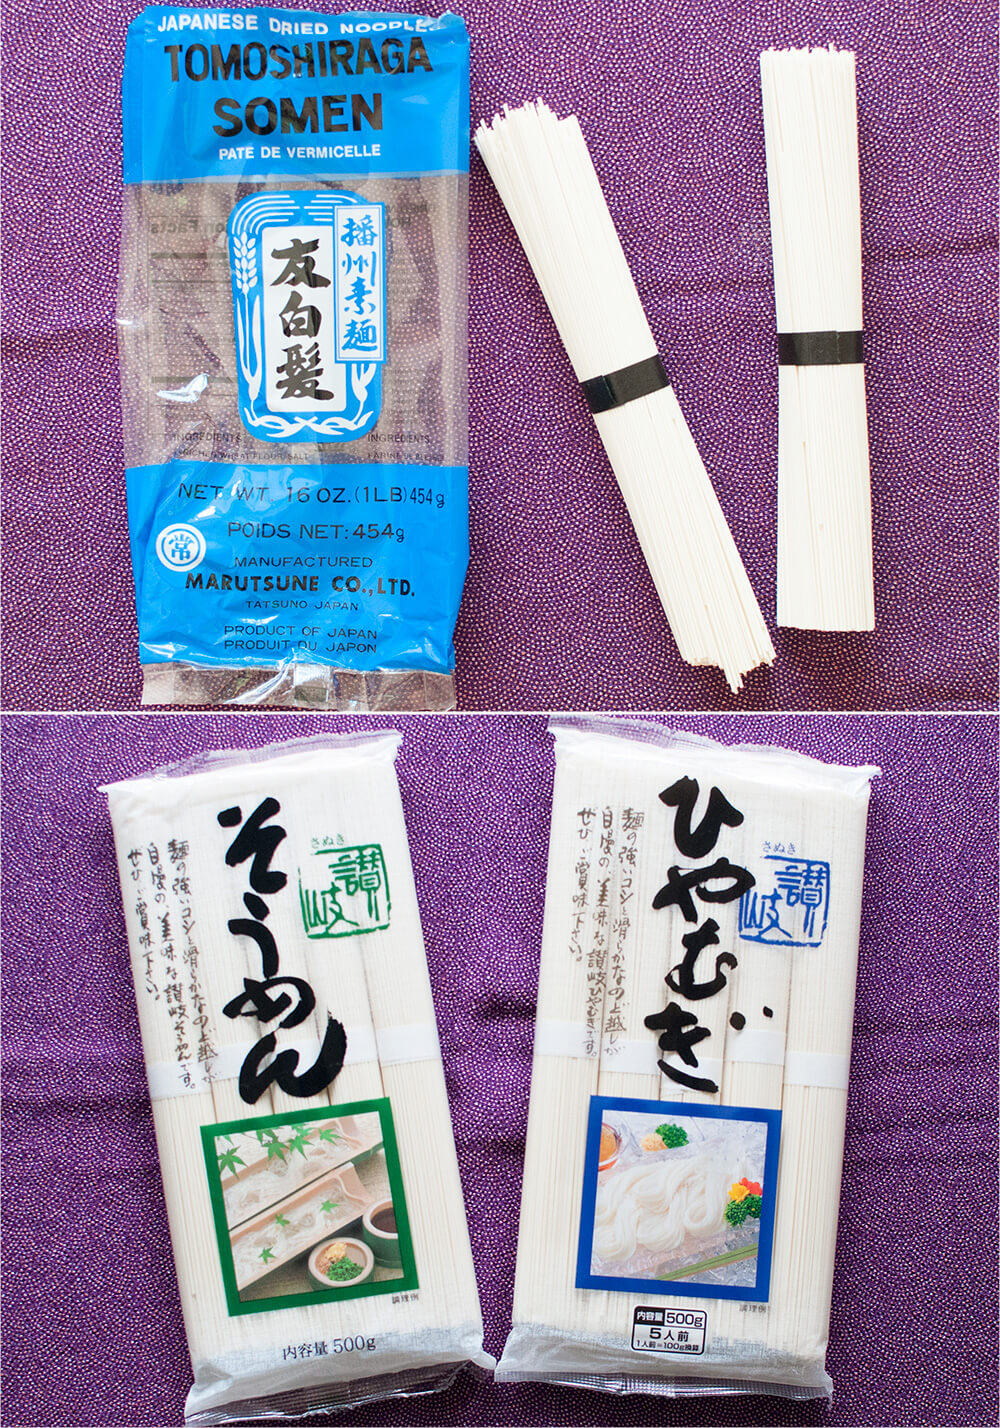 Dried thin noodles - sōmen and hiyamugi.